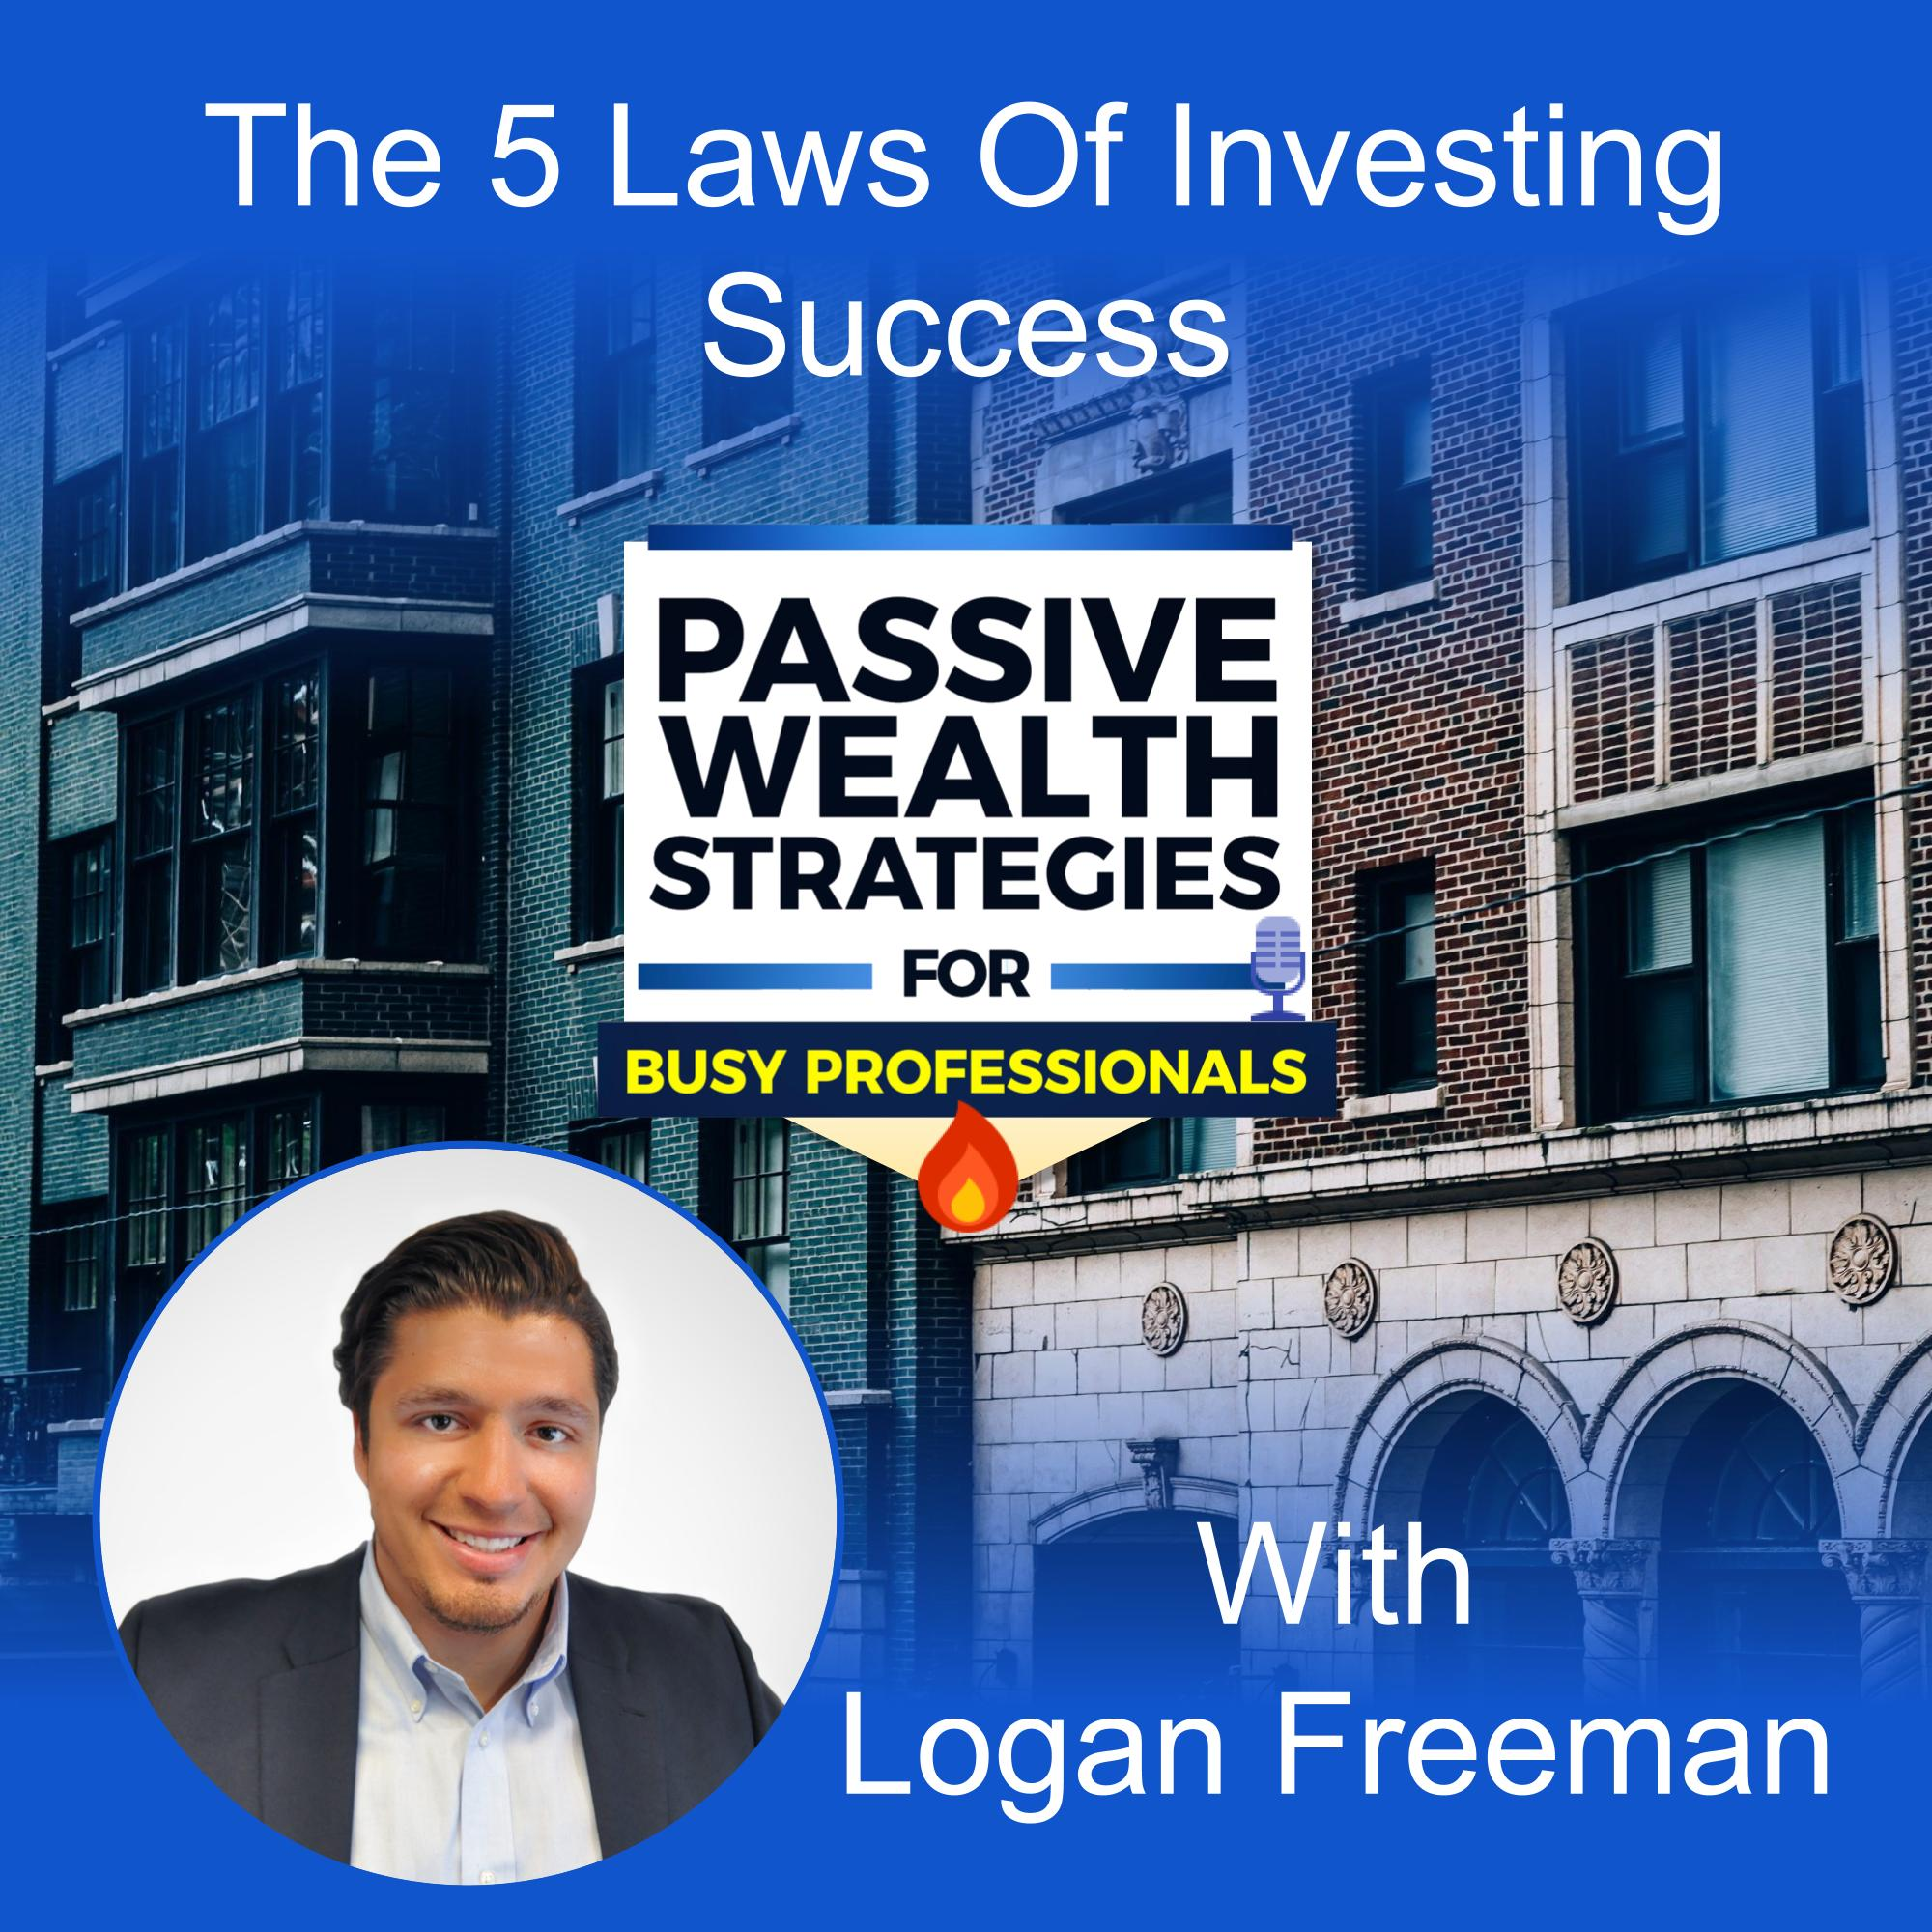 Logan Freeman Live Free Investments the 5 Laws of Investing Success